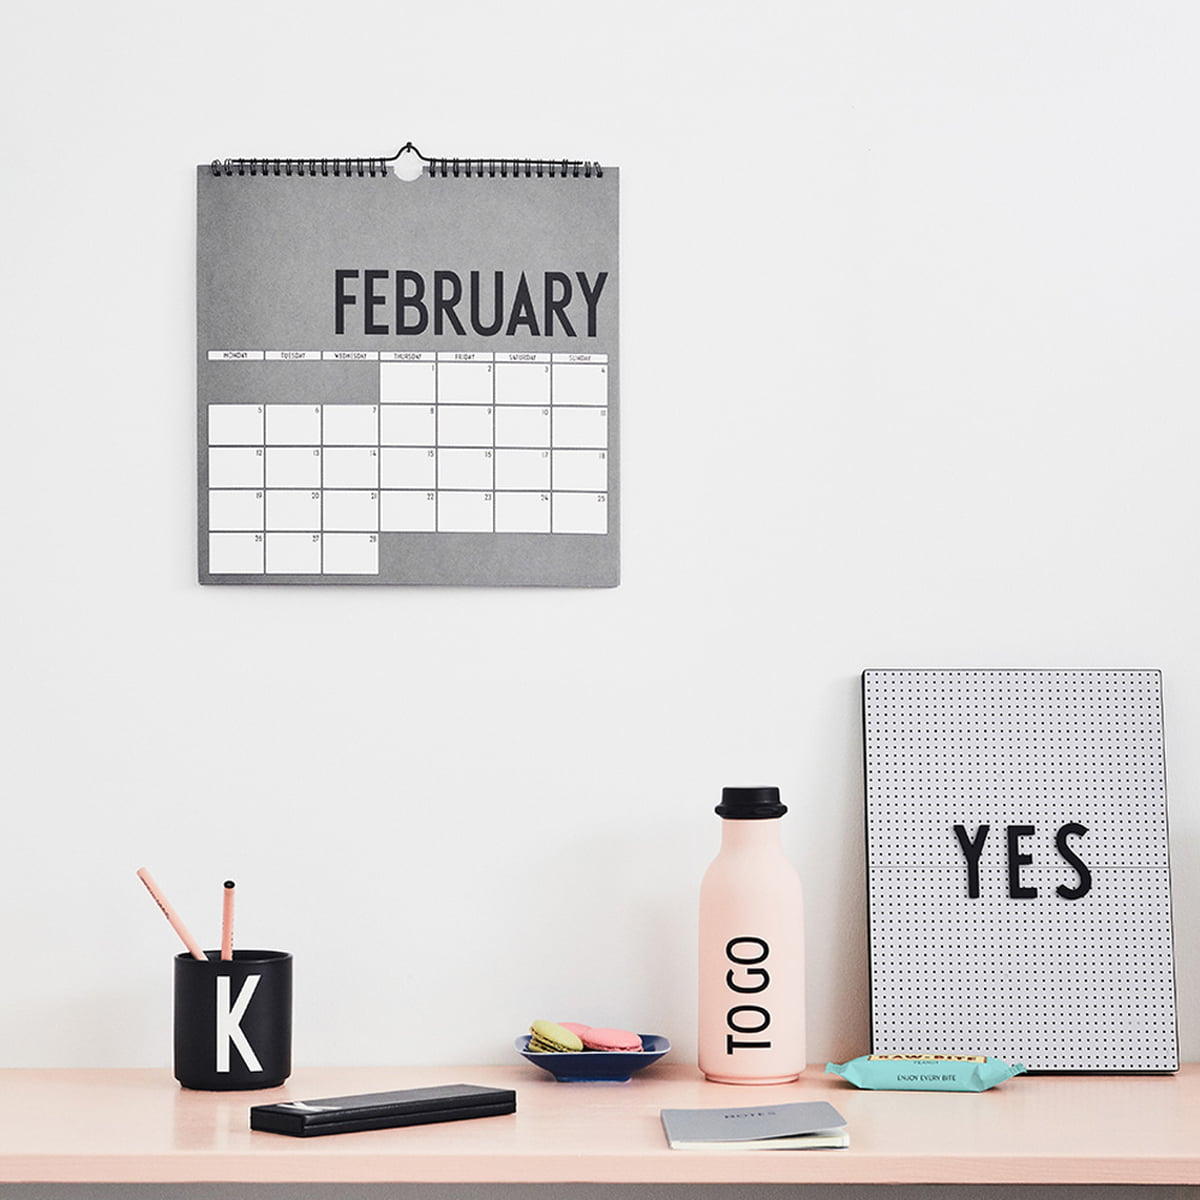 february 2018 united kingdom calendar printable